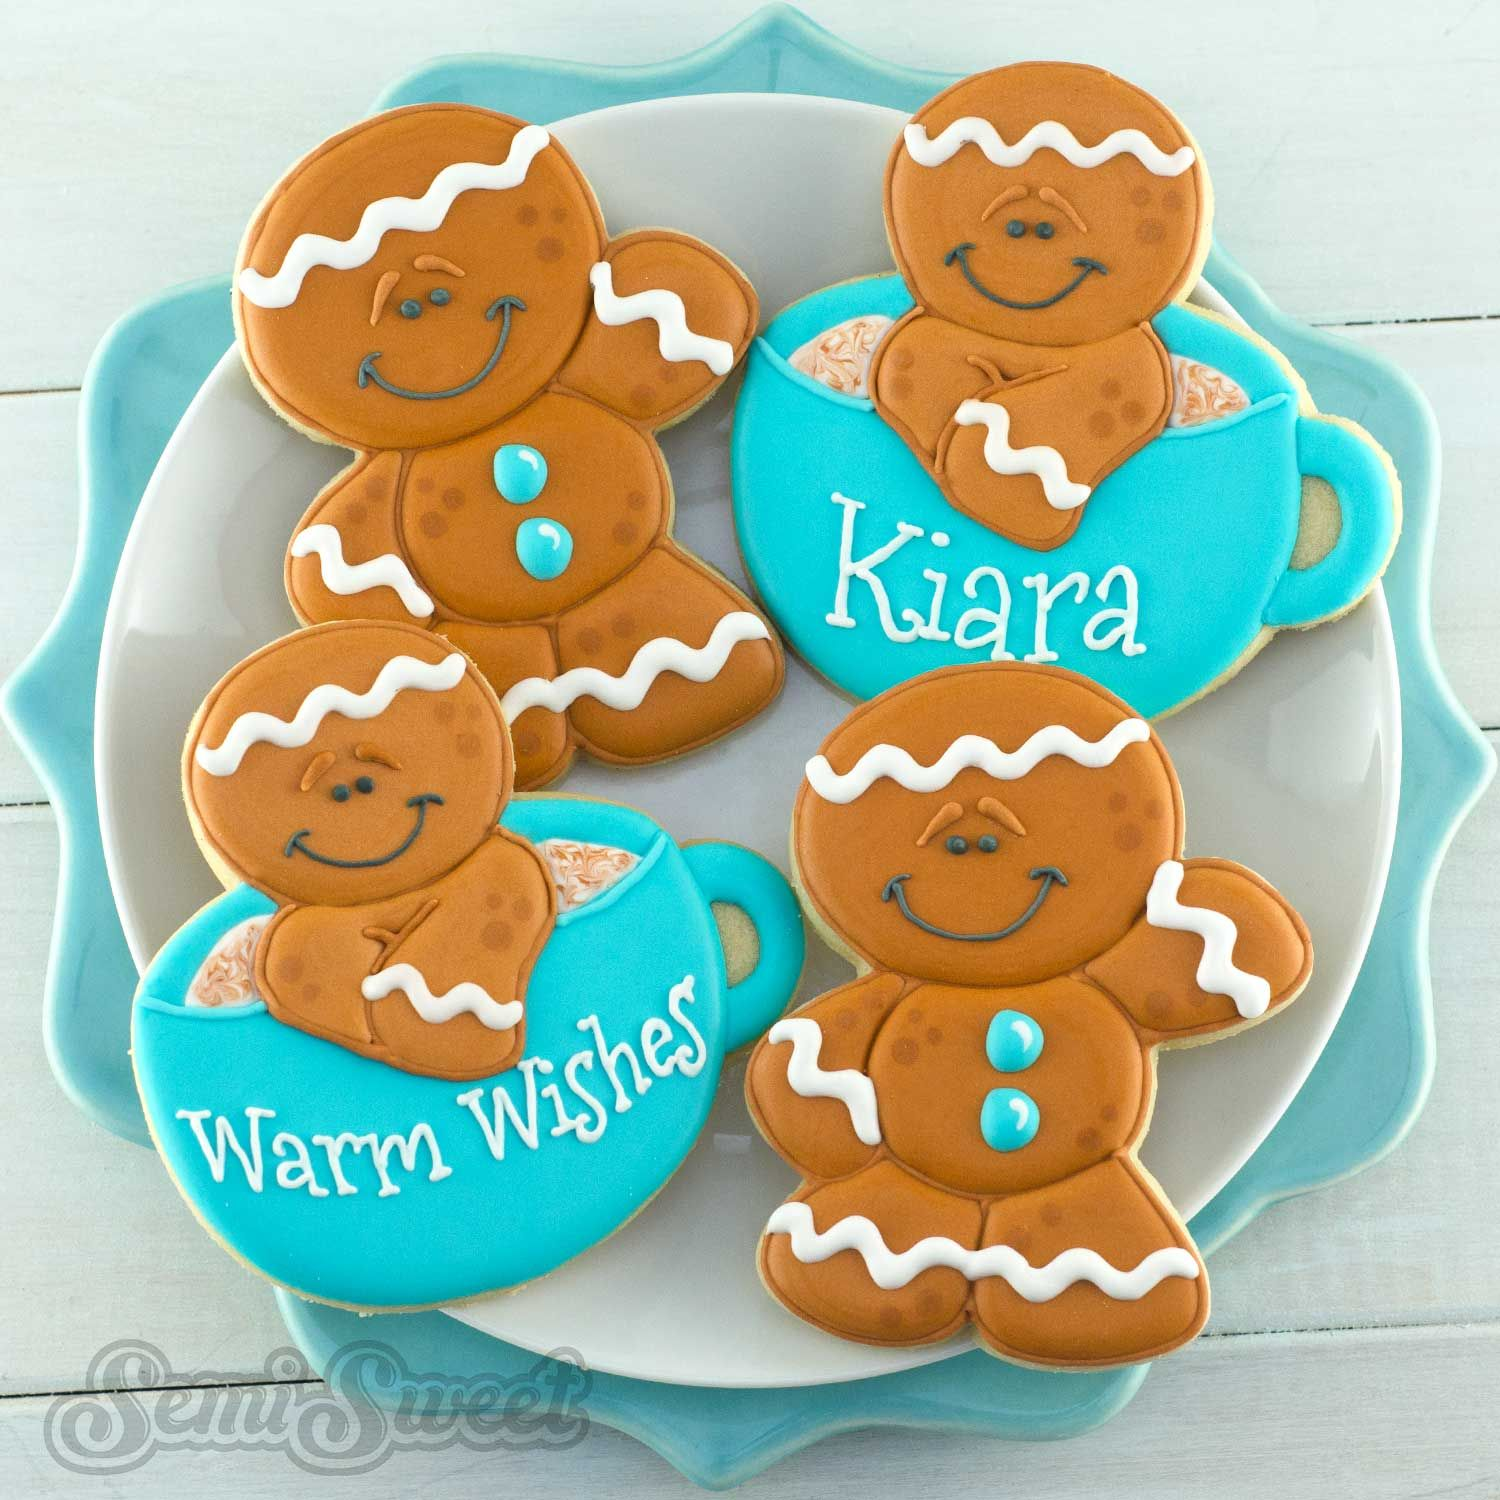 How To Make Decorated Gingerbread Man Cookies Reposteria